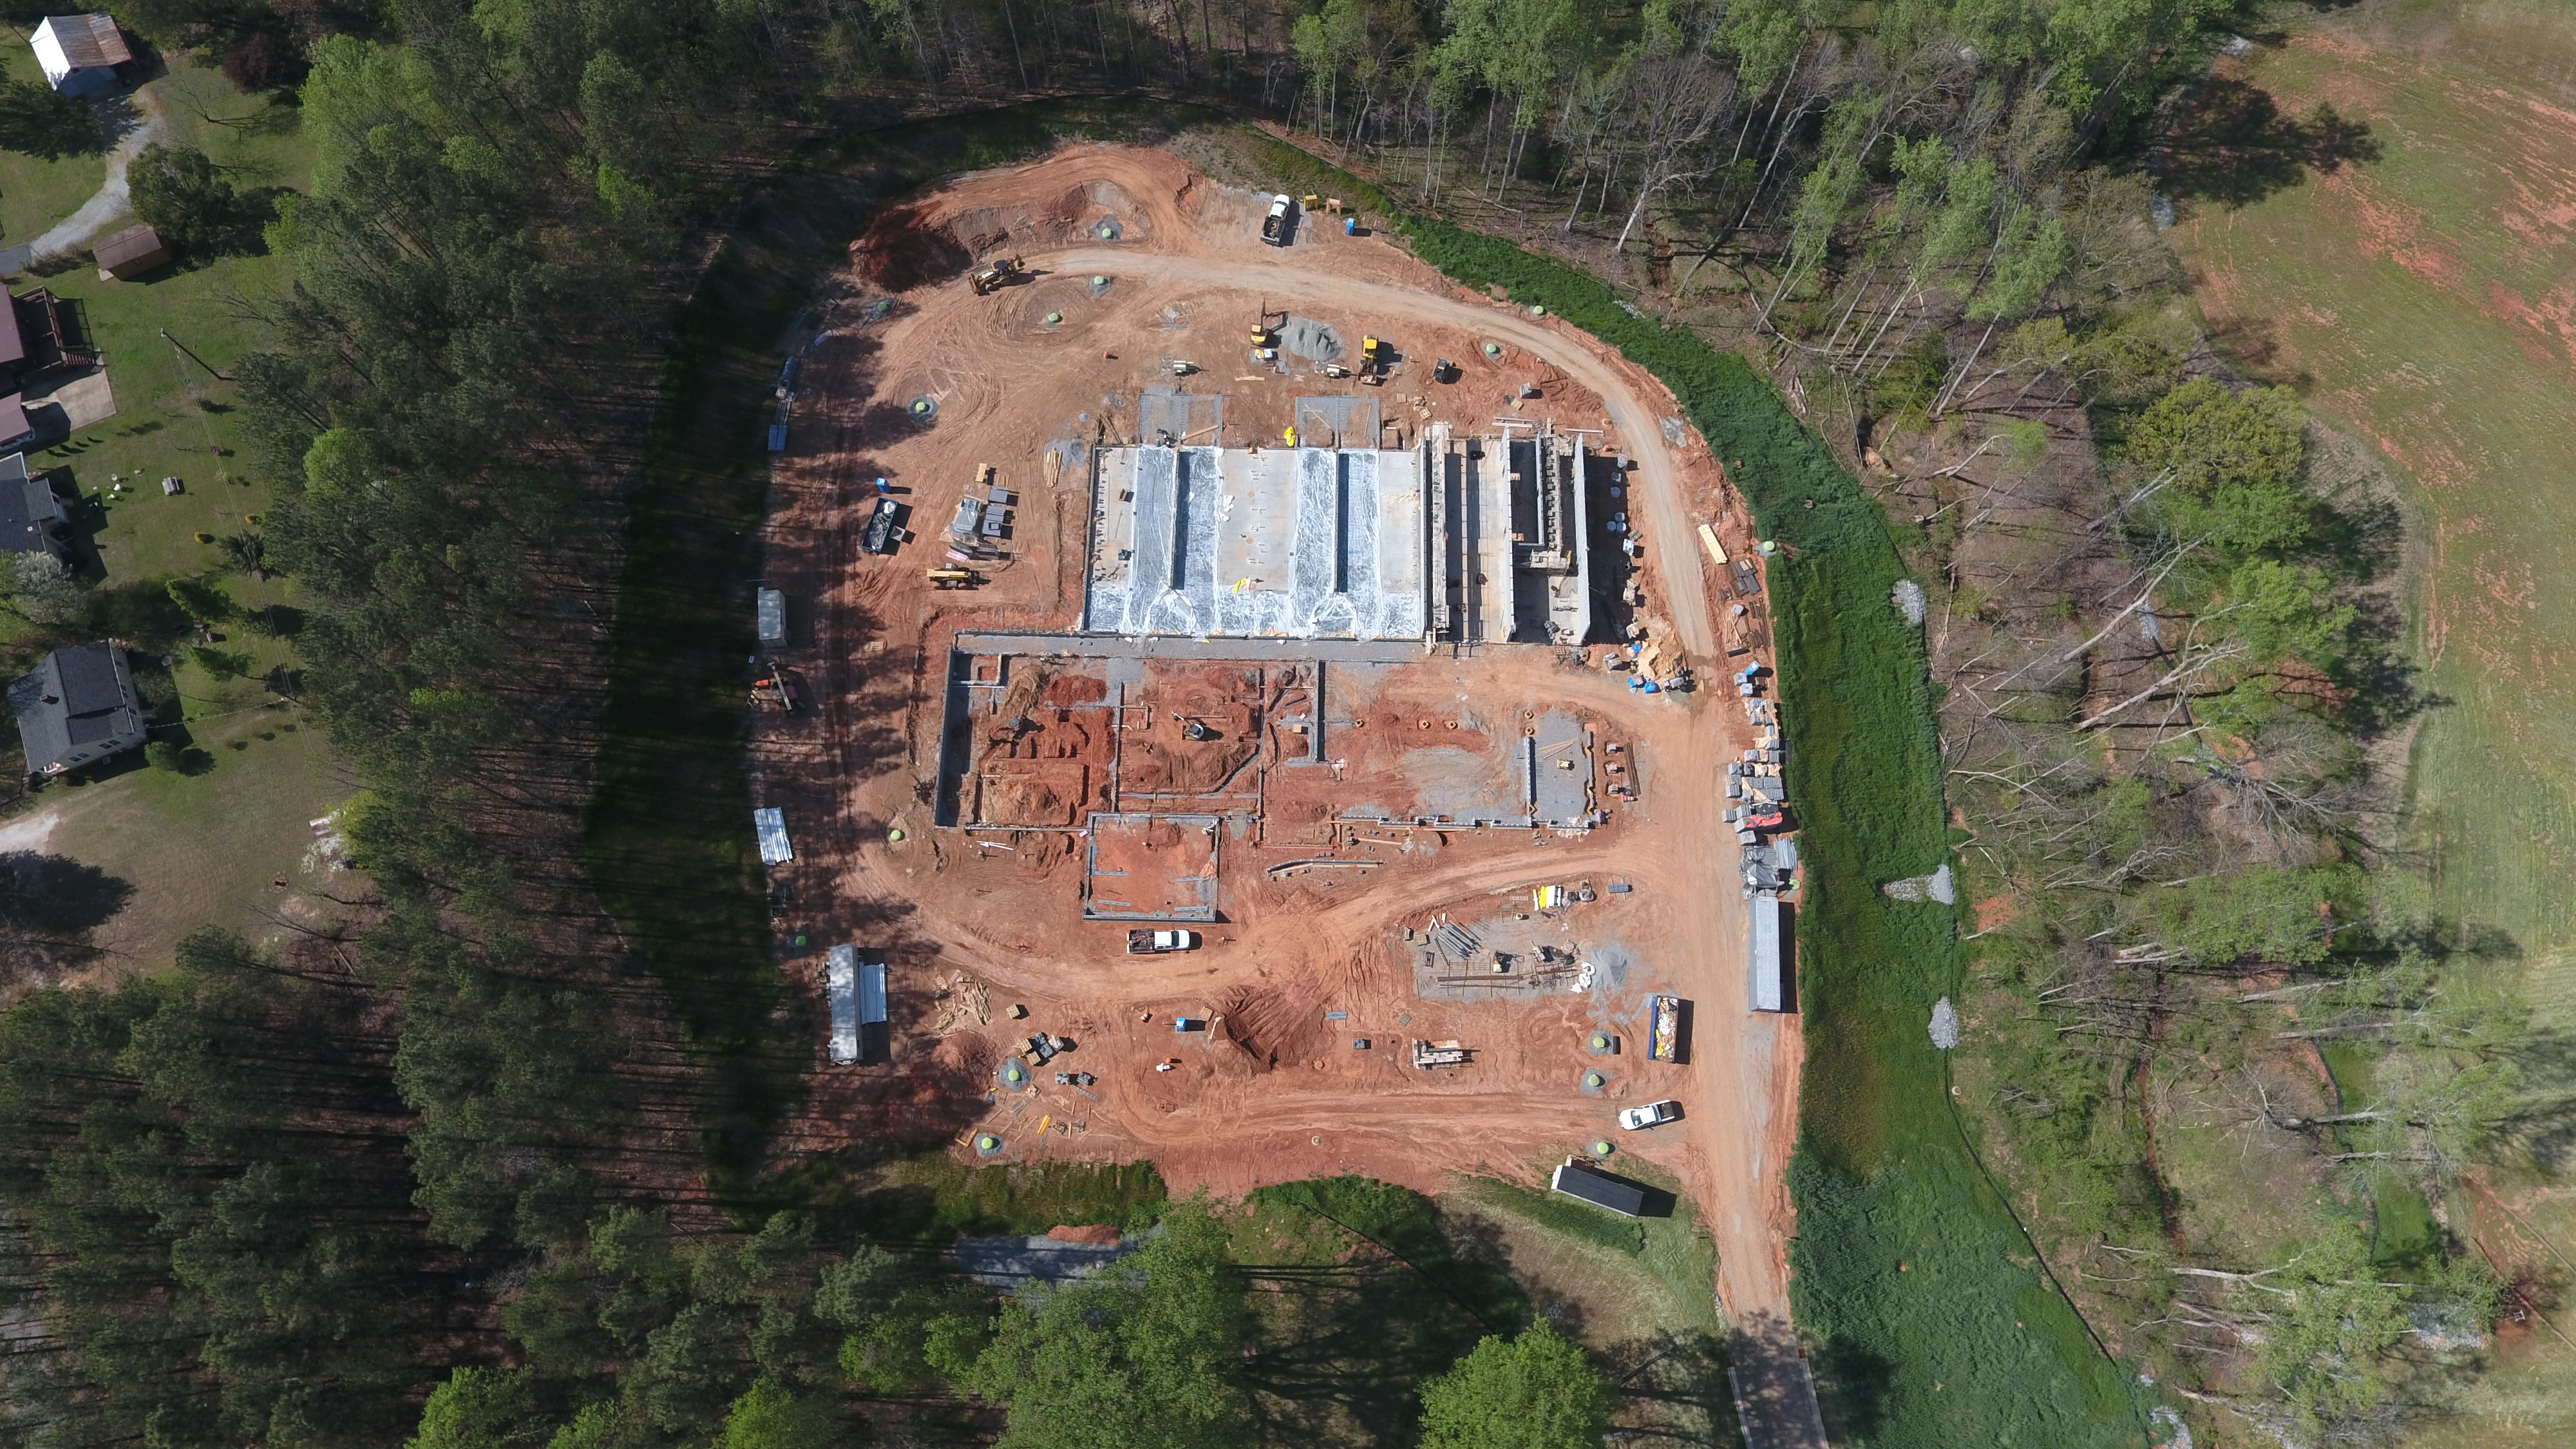 welcome to polk county north carolina law enforcement facility construction progress here are some of the latest pictures of the construction progress of the law enforcement facility